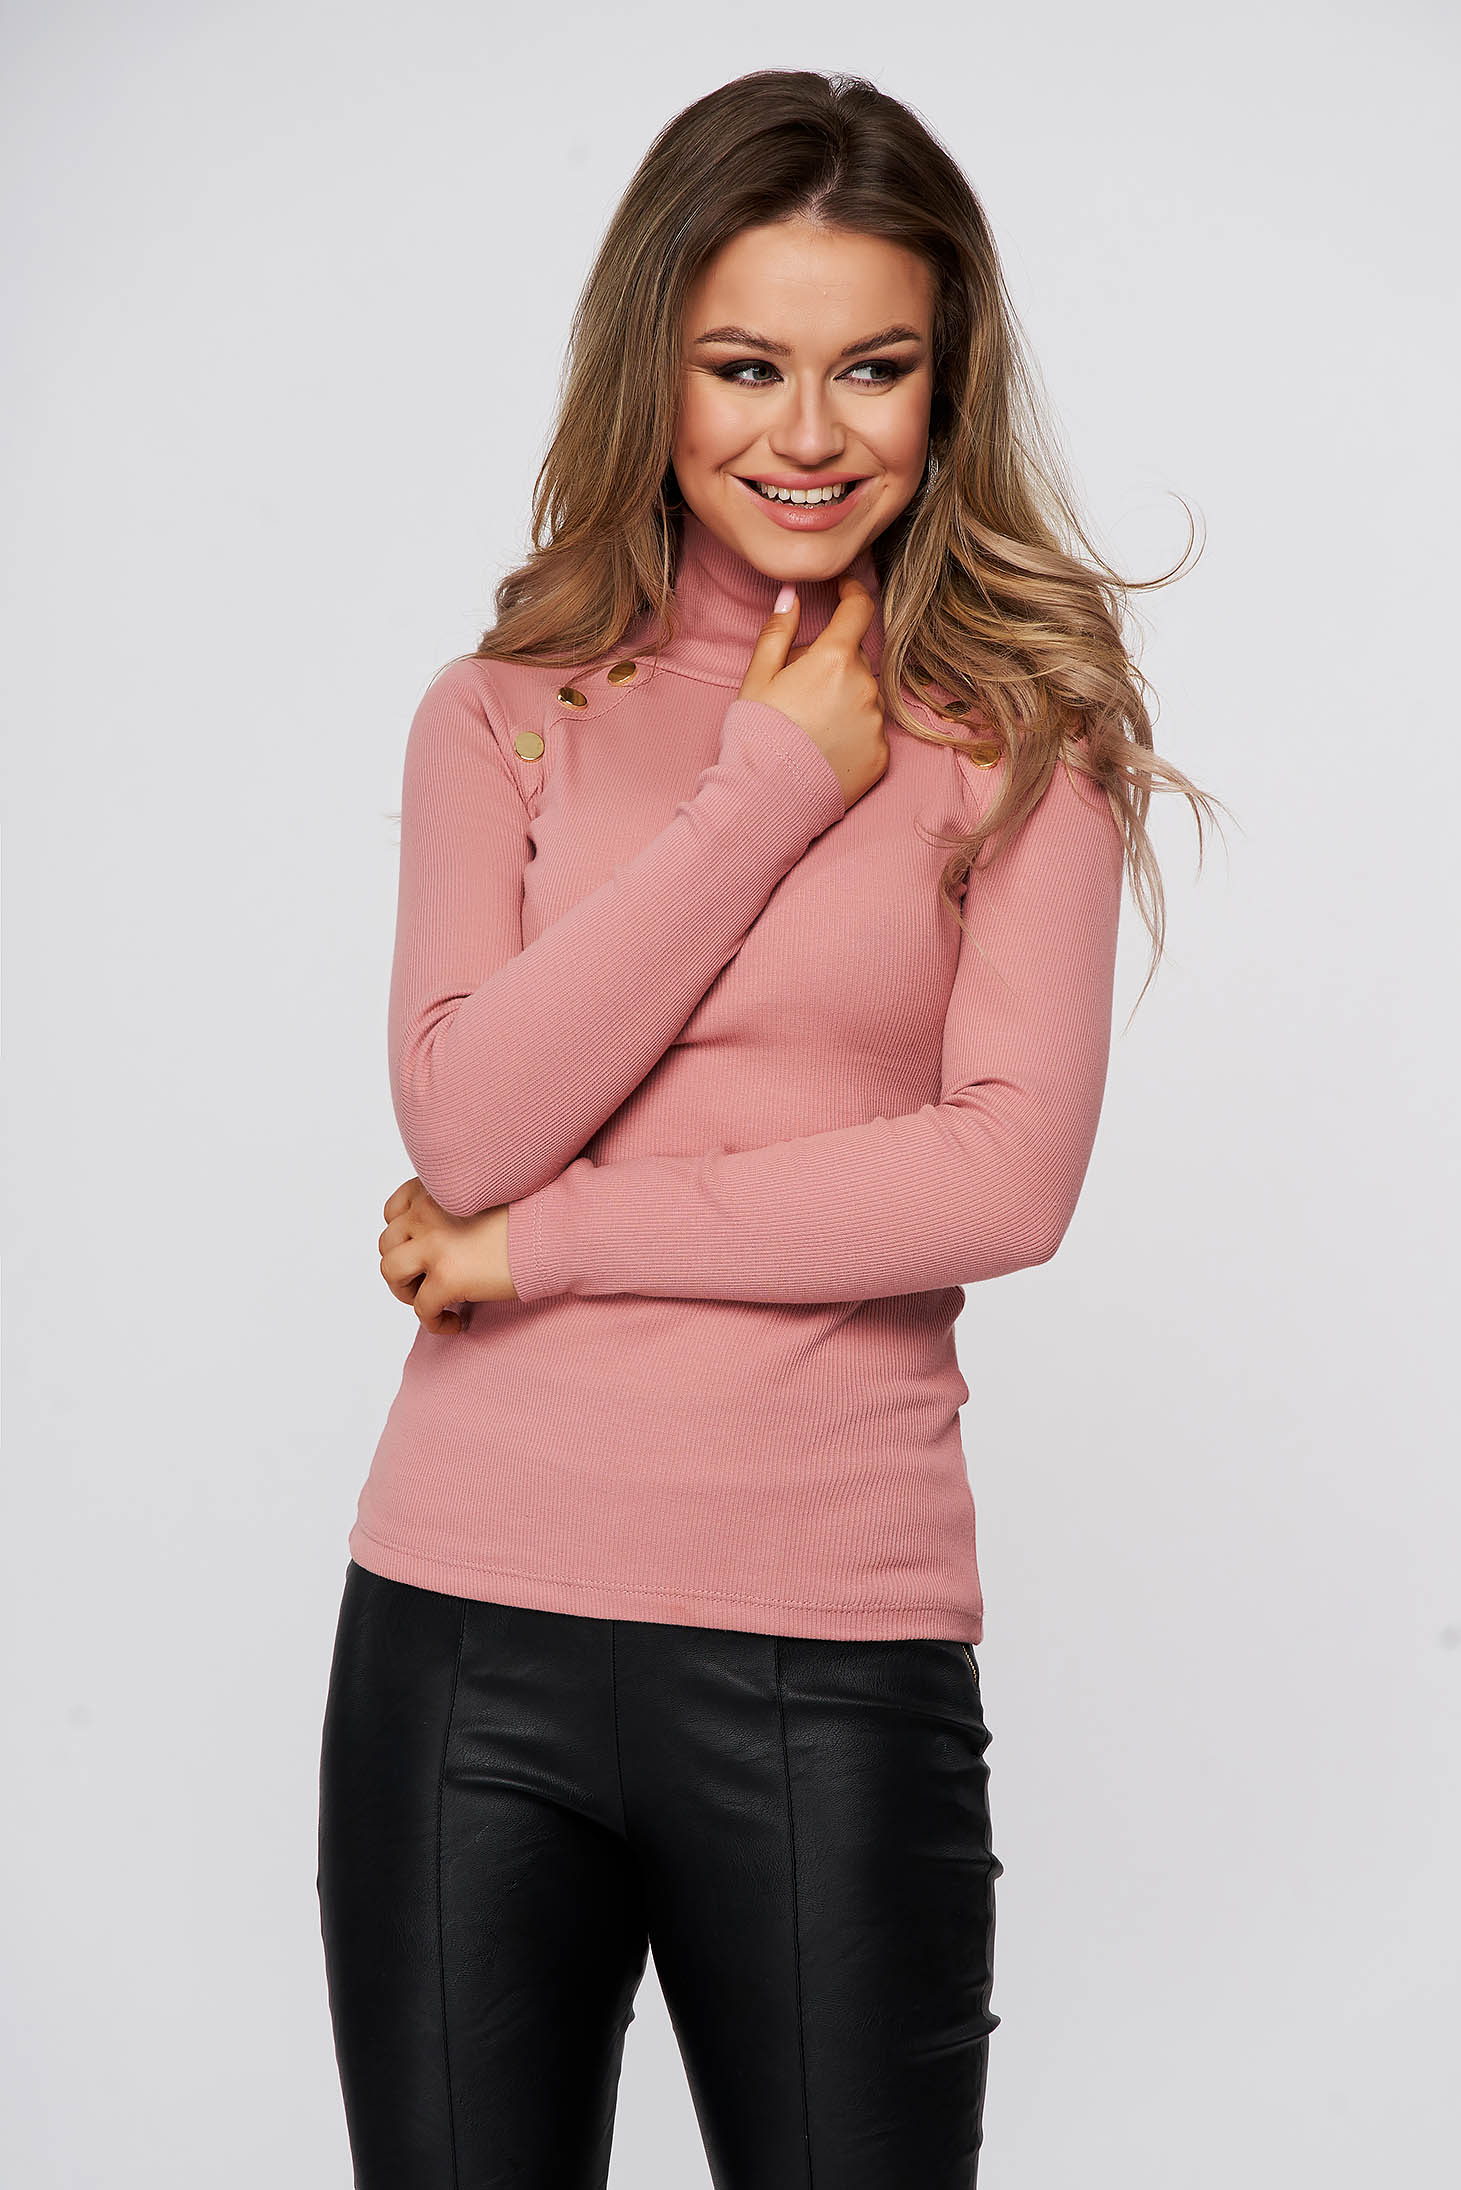 Lightpink women`s blouse cotton from striped fabric with turtle neck tented